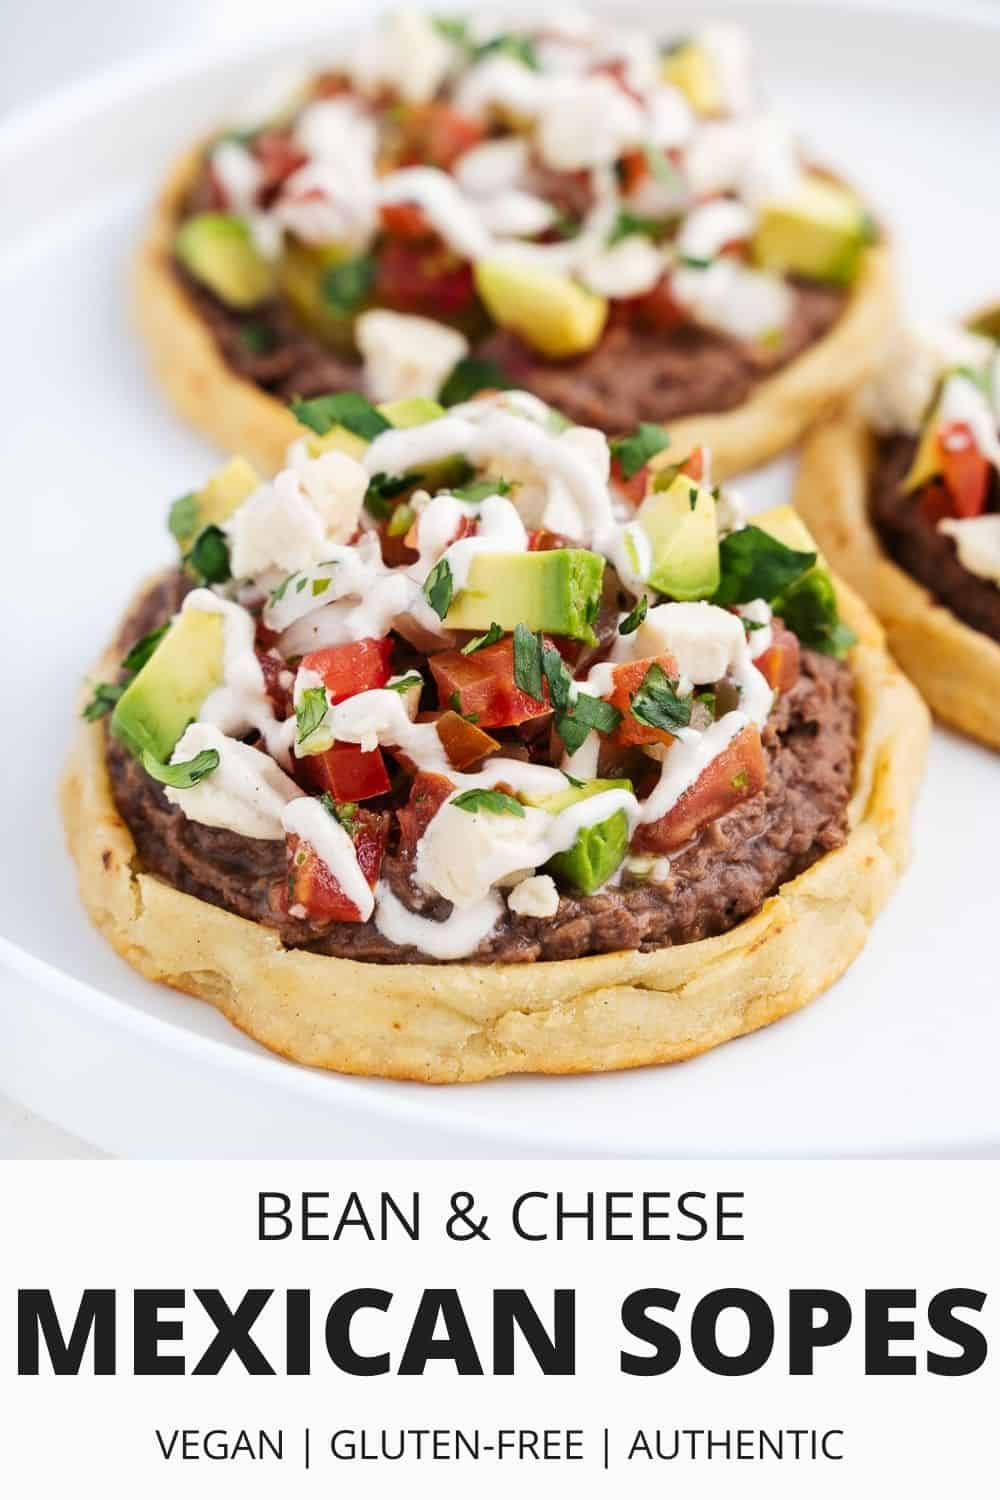 Bean and Cheese Mexican Sopes